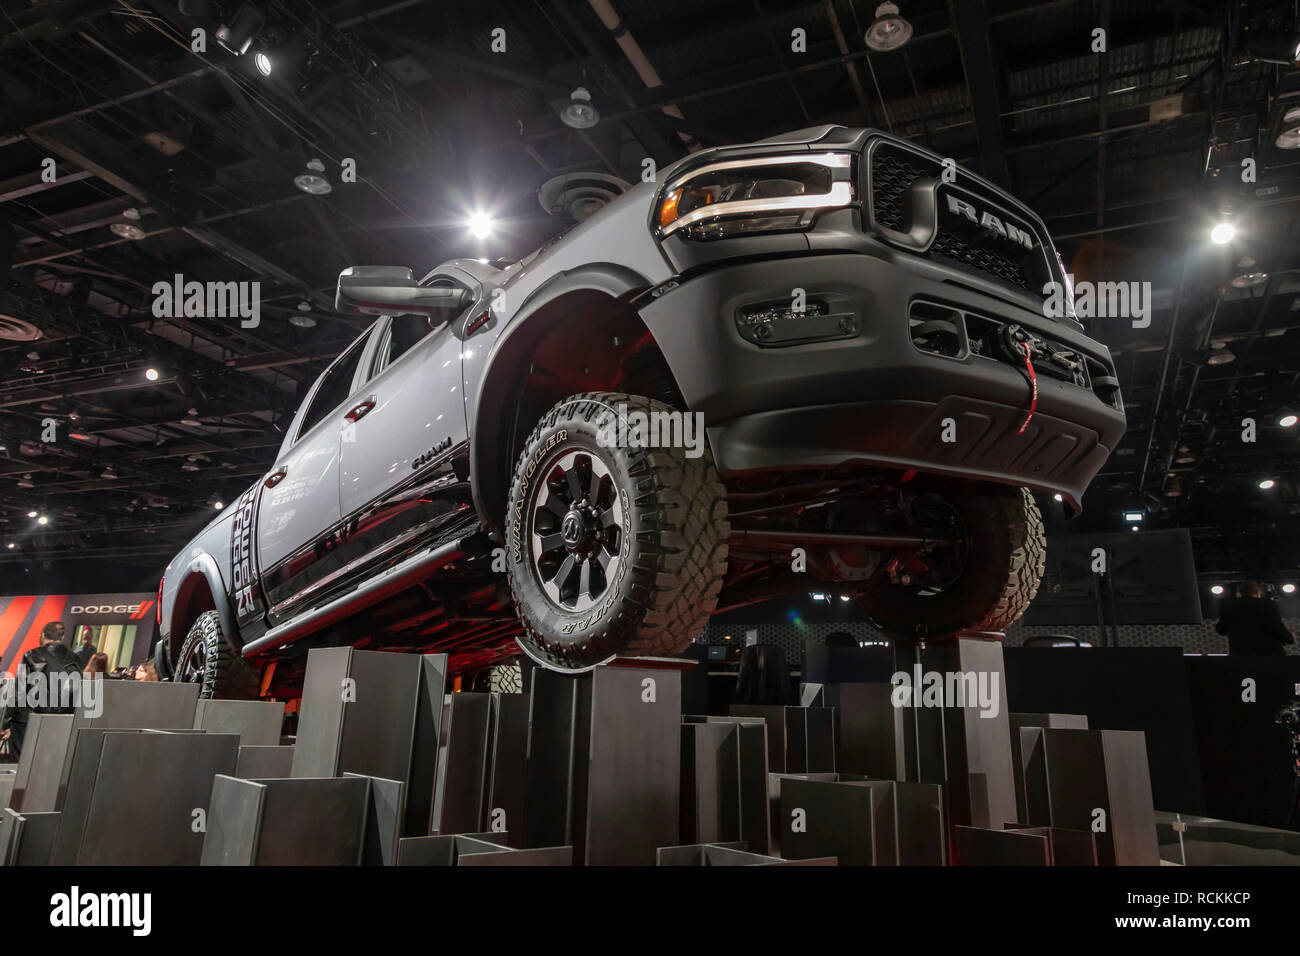 Detroit, Michigan - The 2019 Ram Power Wagon on display at the North American International Auto Show. - Stock Image